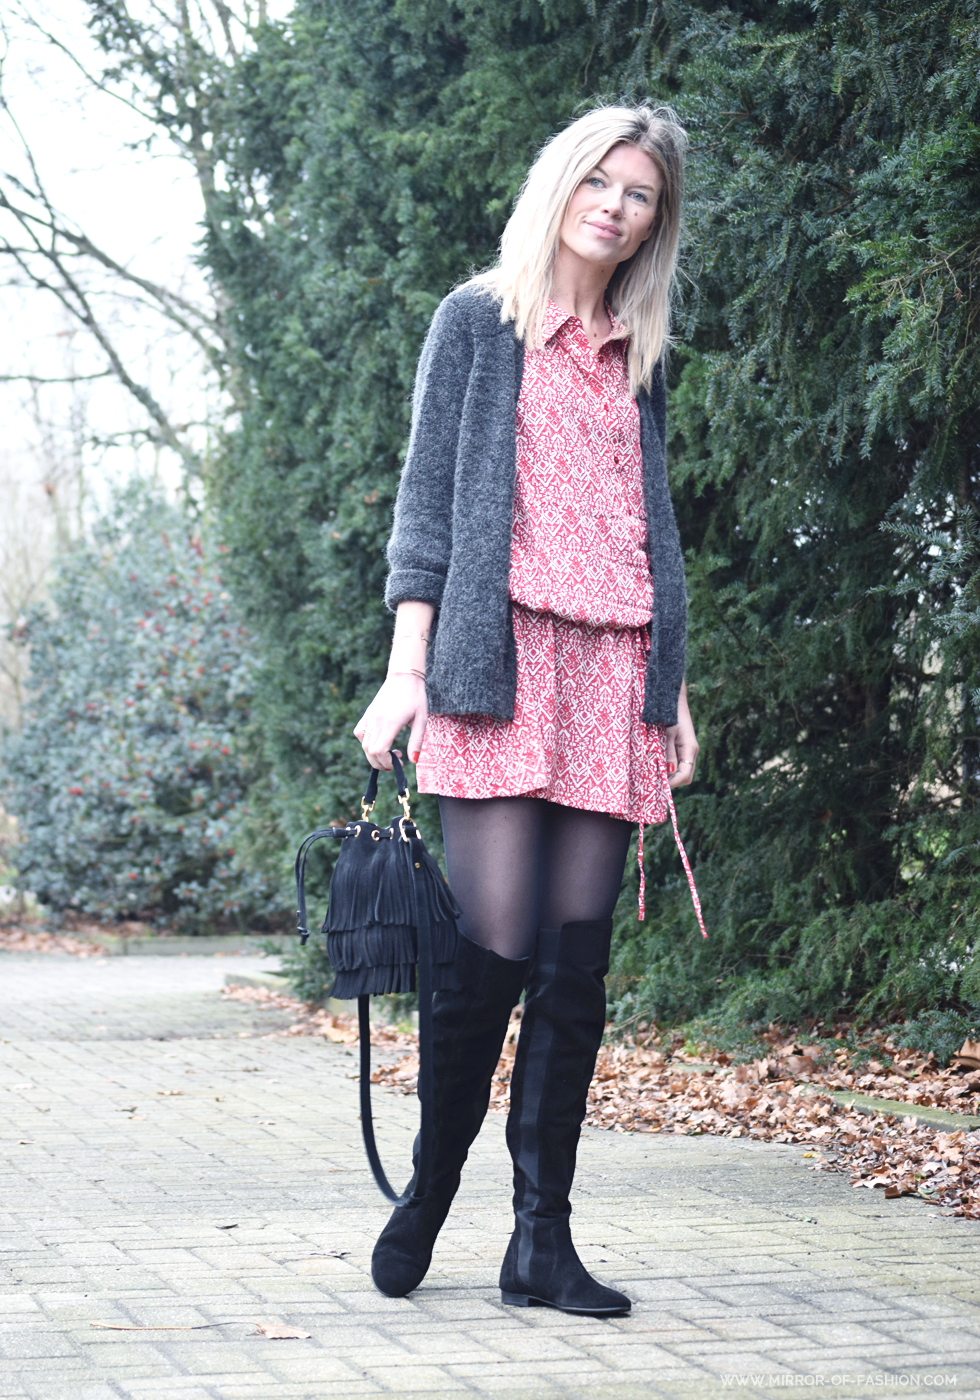 Outfit of the day, ba&sh, Zign, Saint Laurent, Falke, American Vintage, ootd, style, fahsiuon, blogger, overknee boots